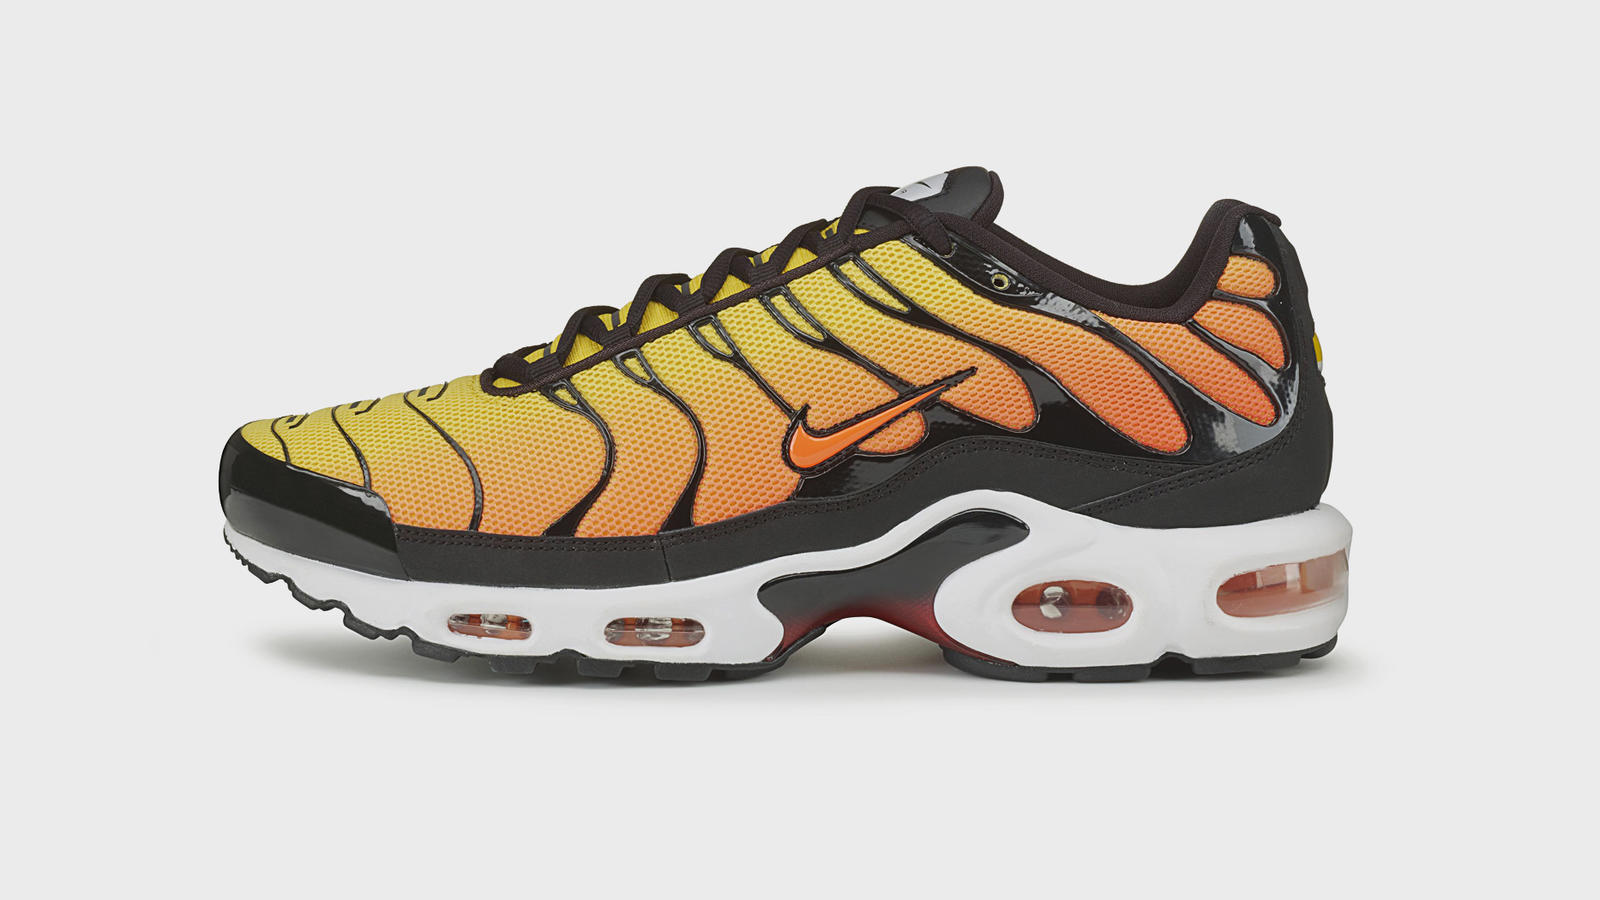 best value 7ca8f 72e10 Nike Air Max Plus TN History - Nike News